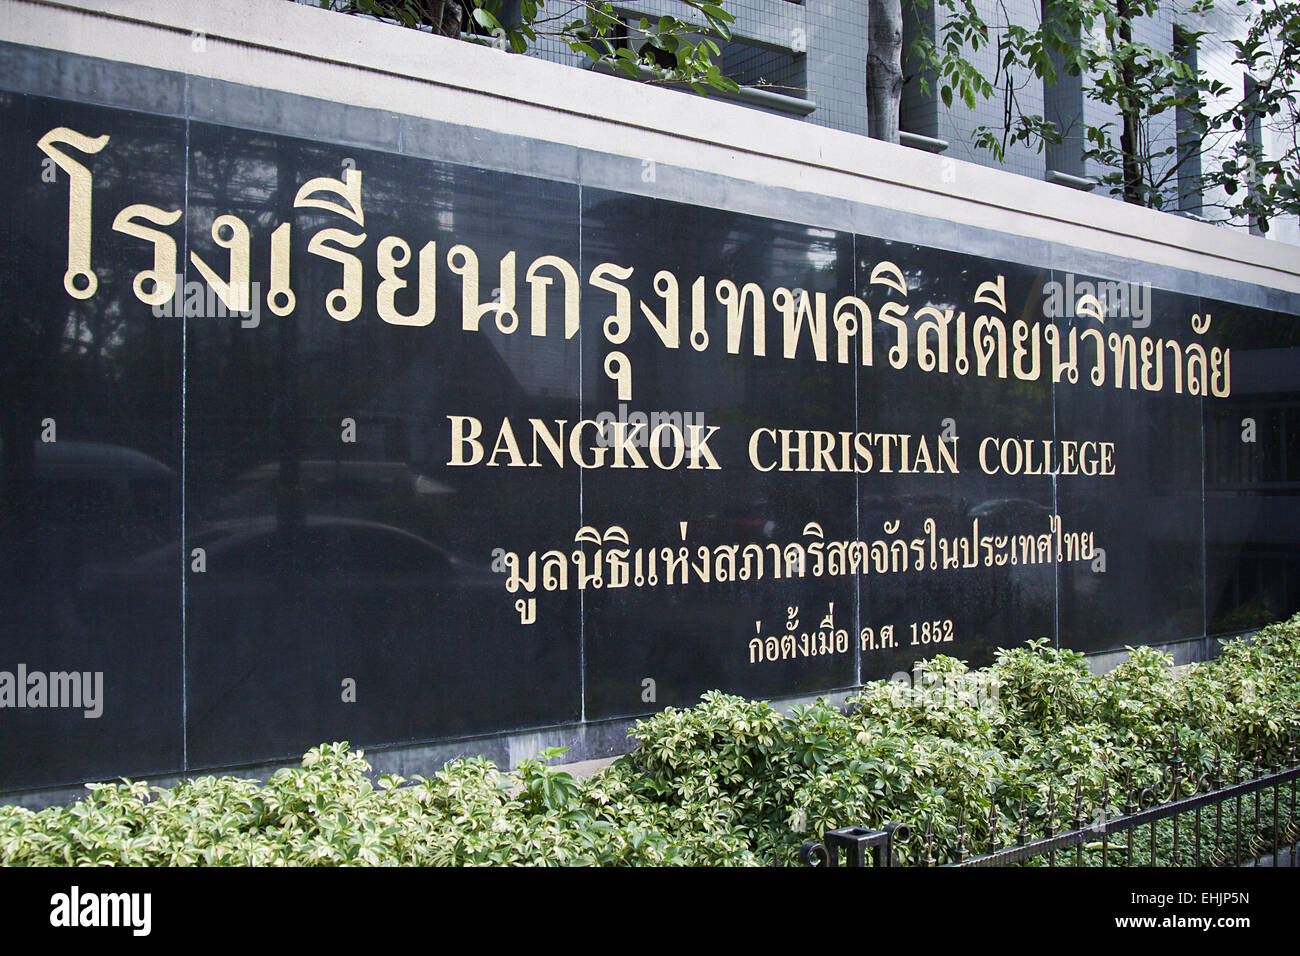 Christian College - Stock Image